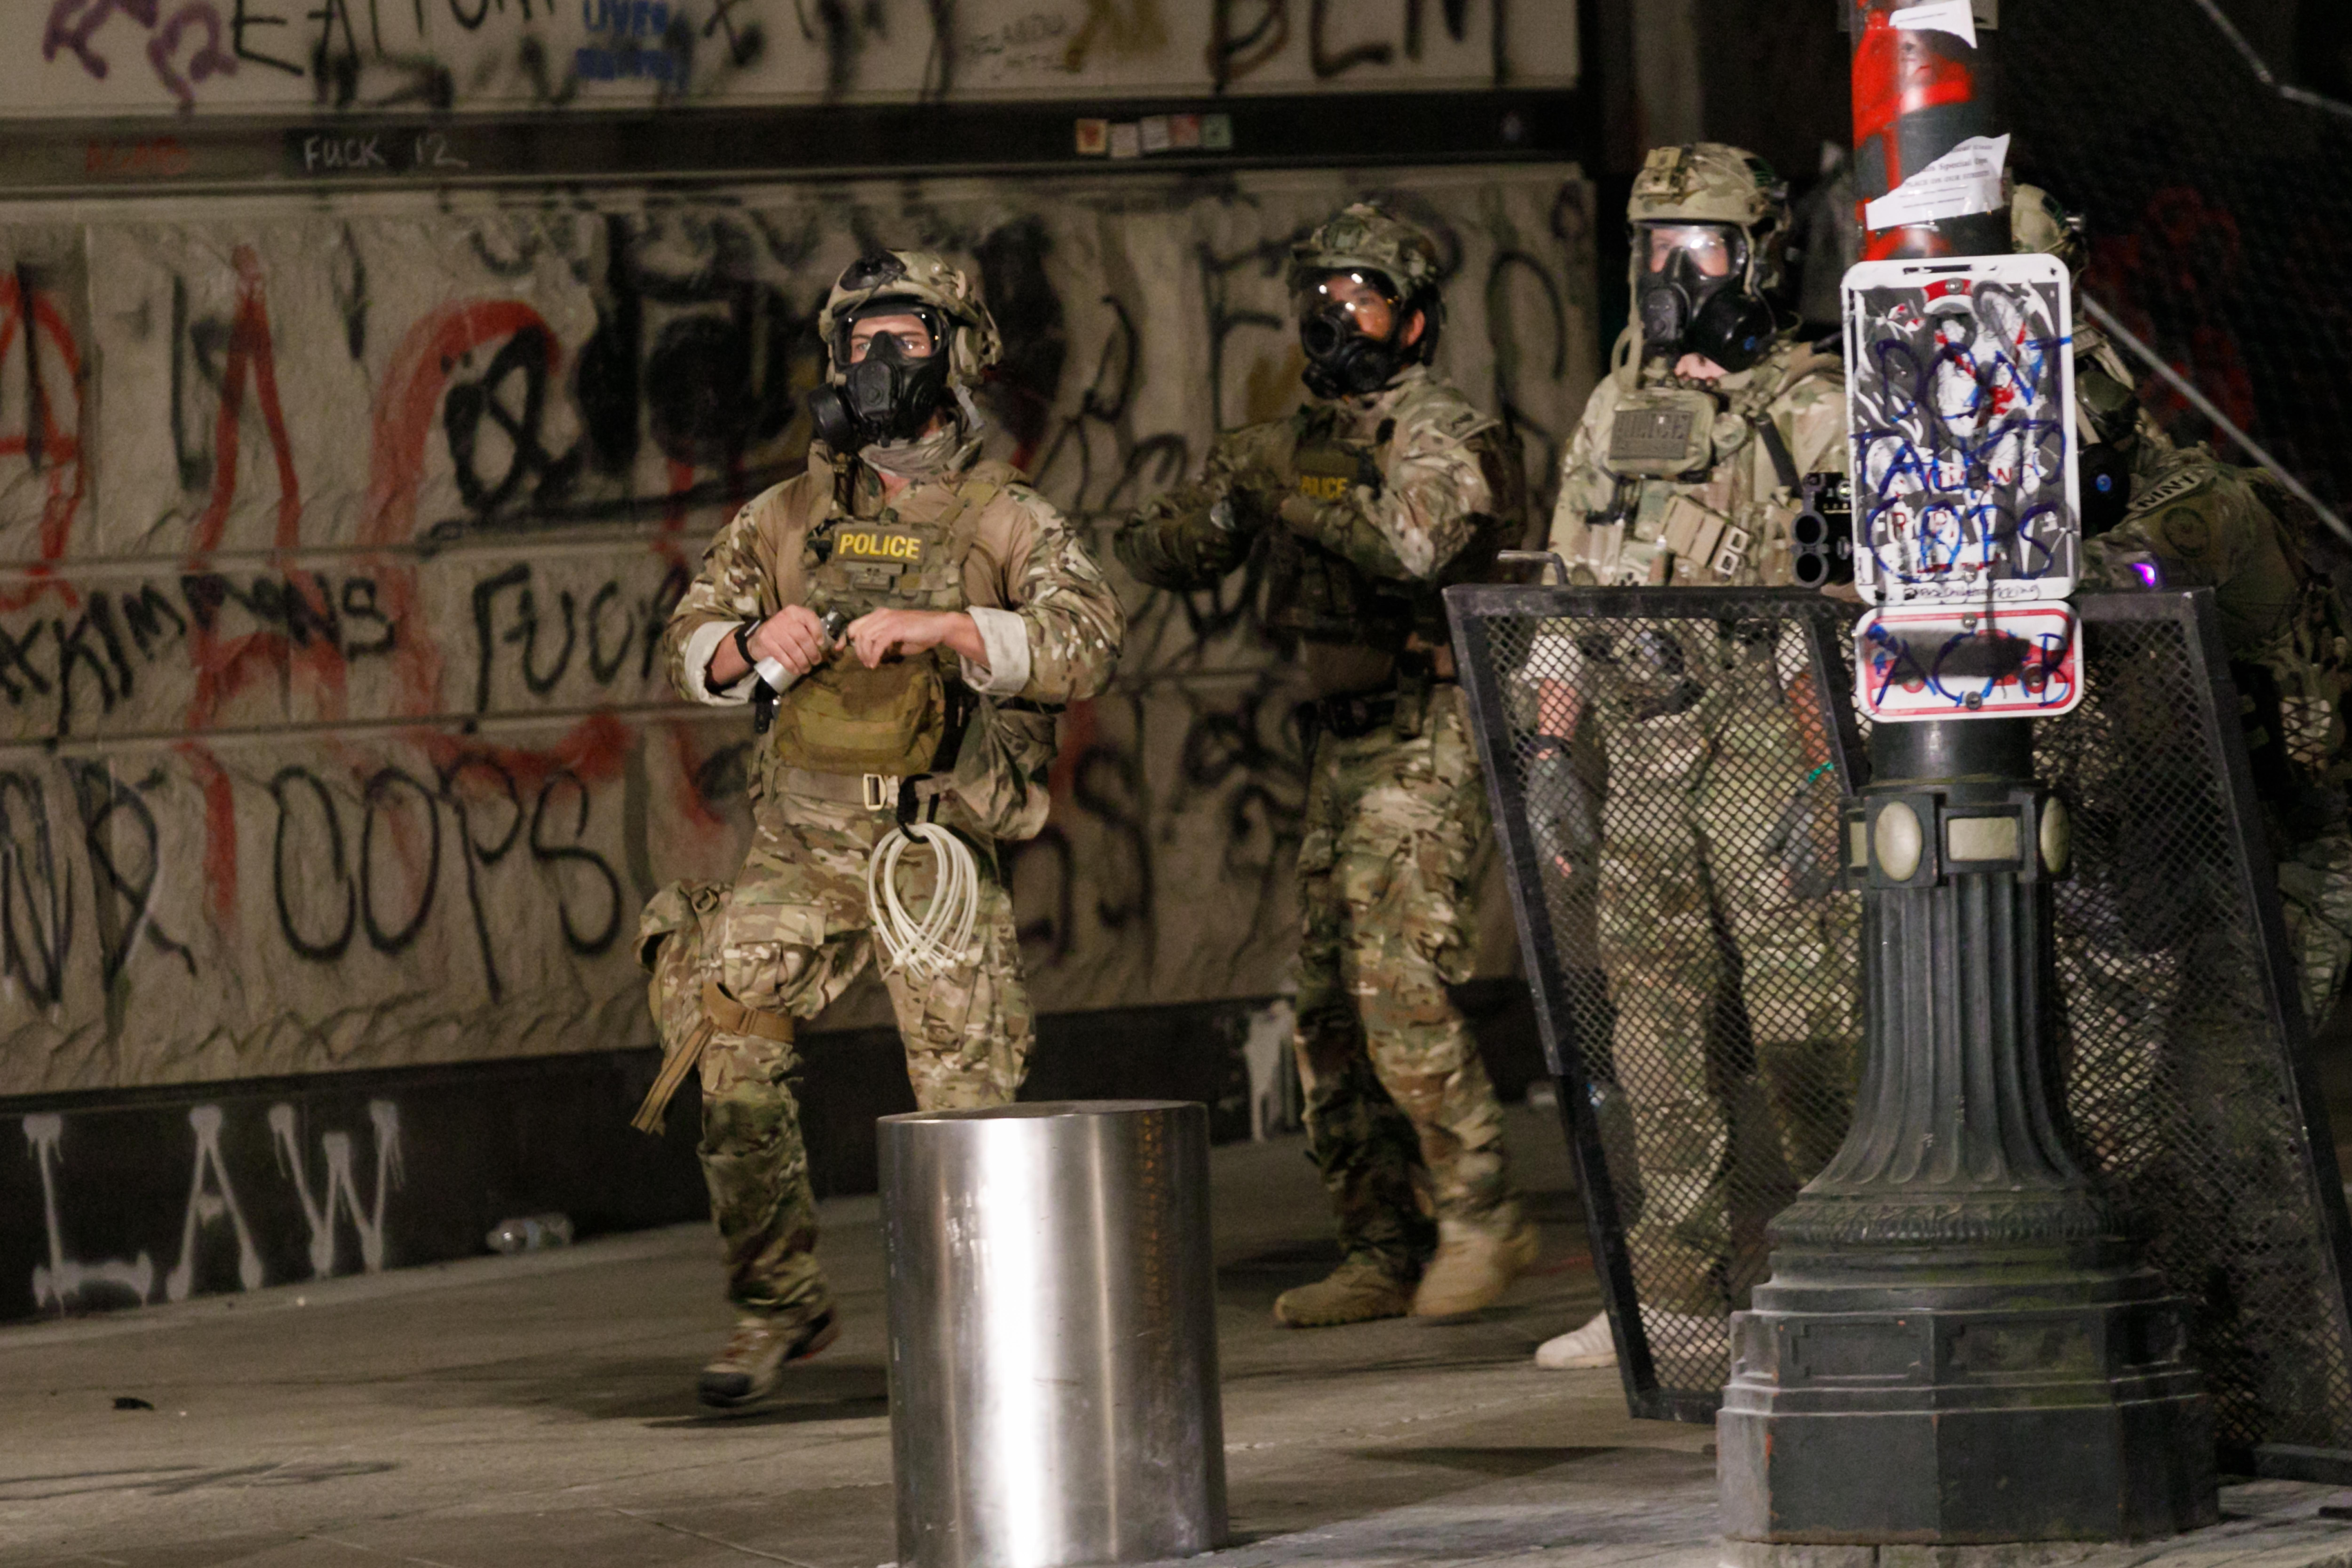 Federal agents in camouflage military gear walk on the street of Portland, Oregon.